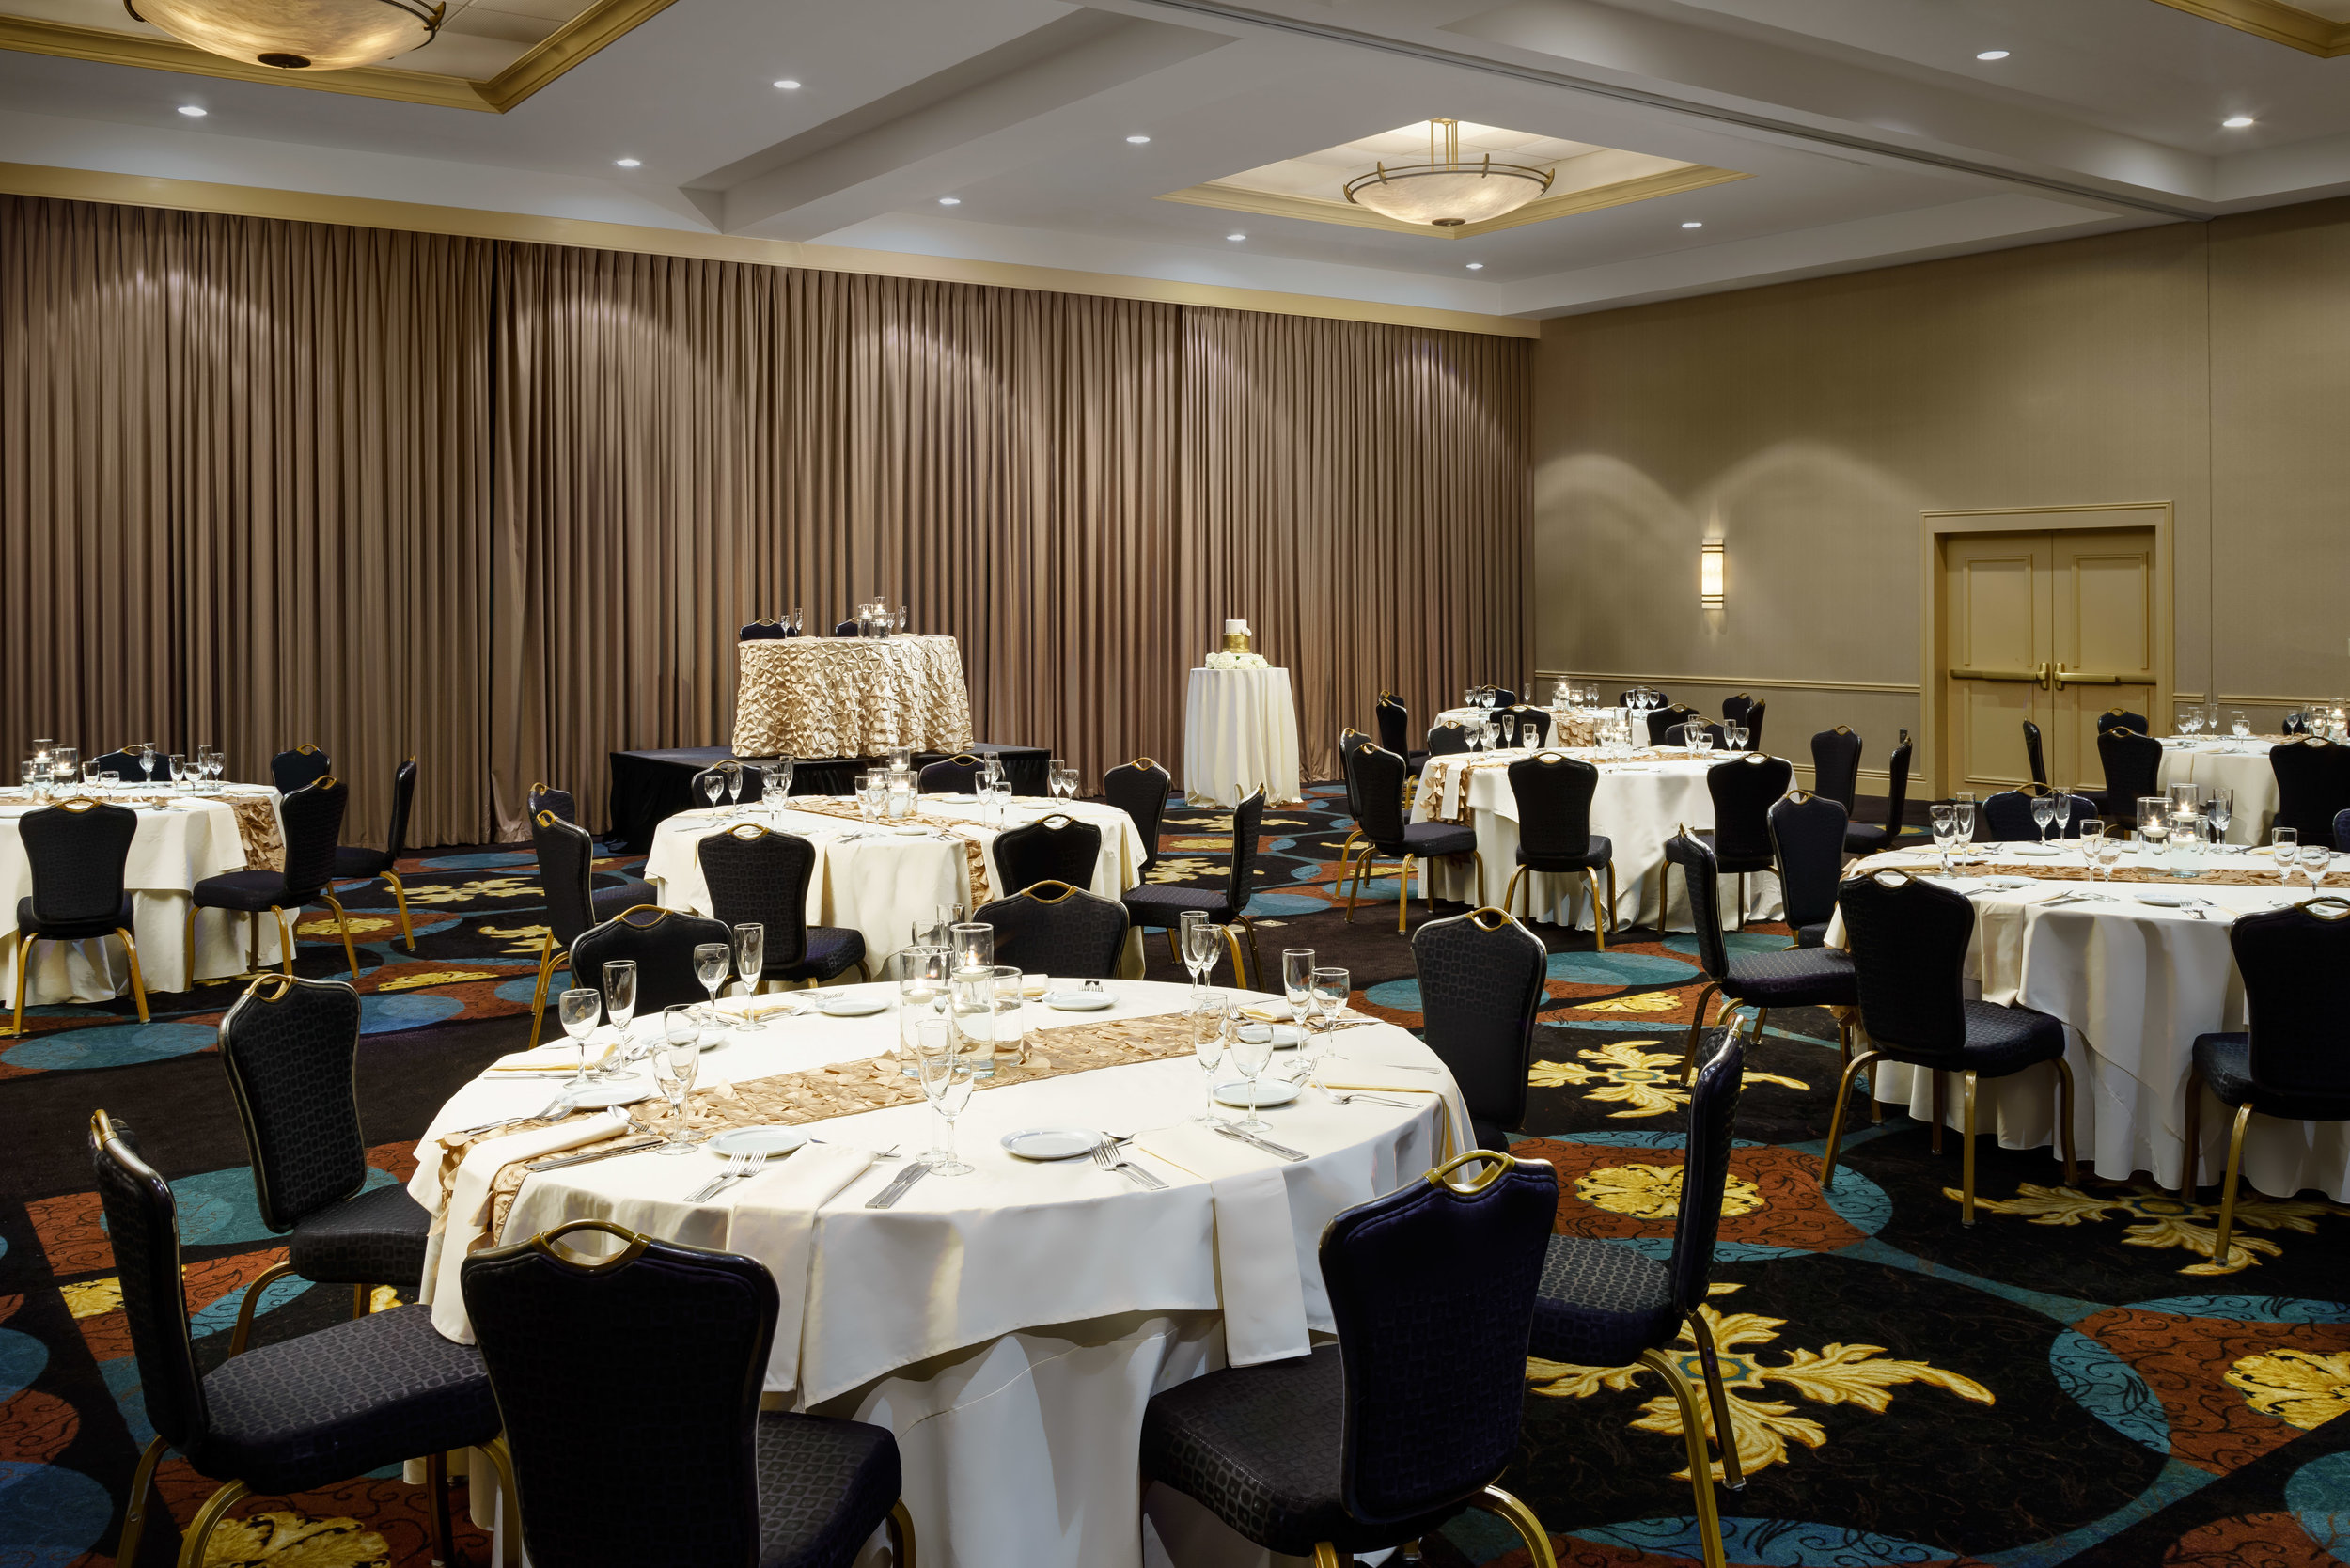 Elegant Reception - For your reception, we offer the spacious University Ballroom. This elegant space can accommodate any number of themes and visions, and features a parquet dance floor.